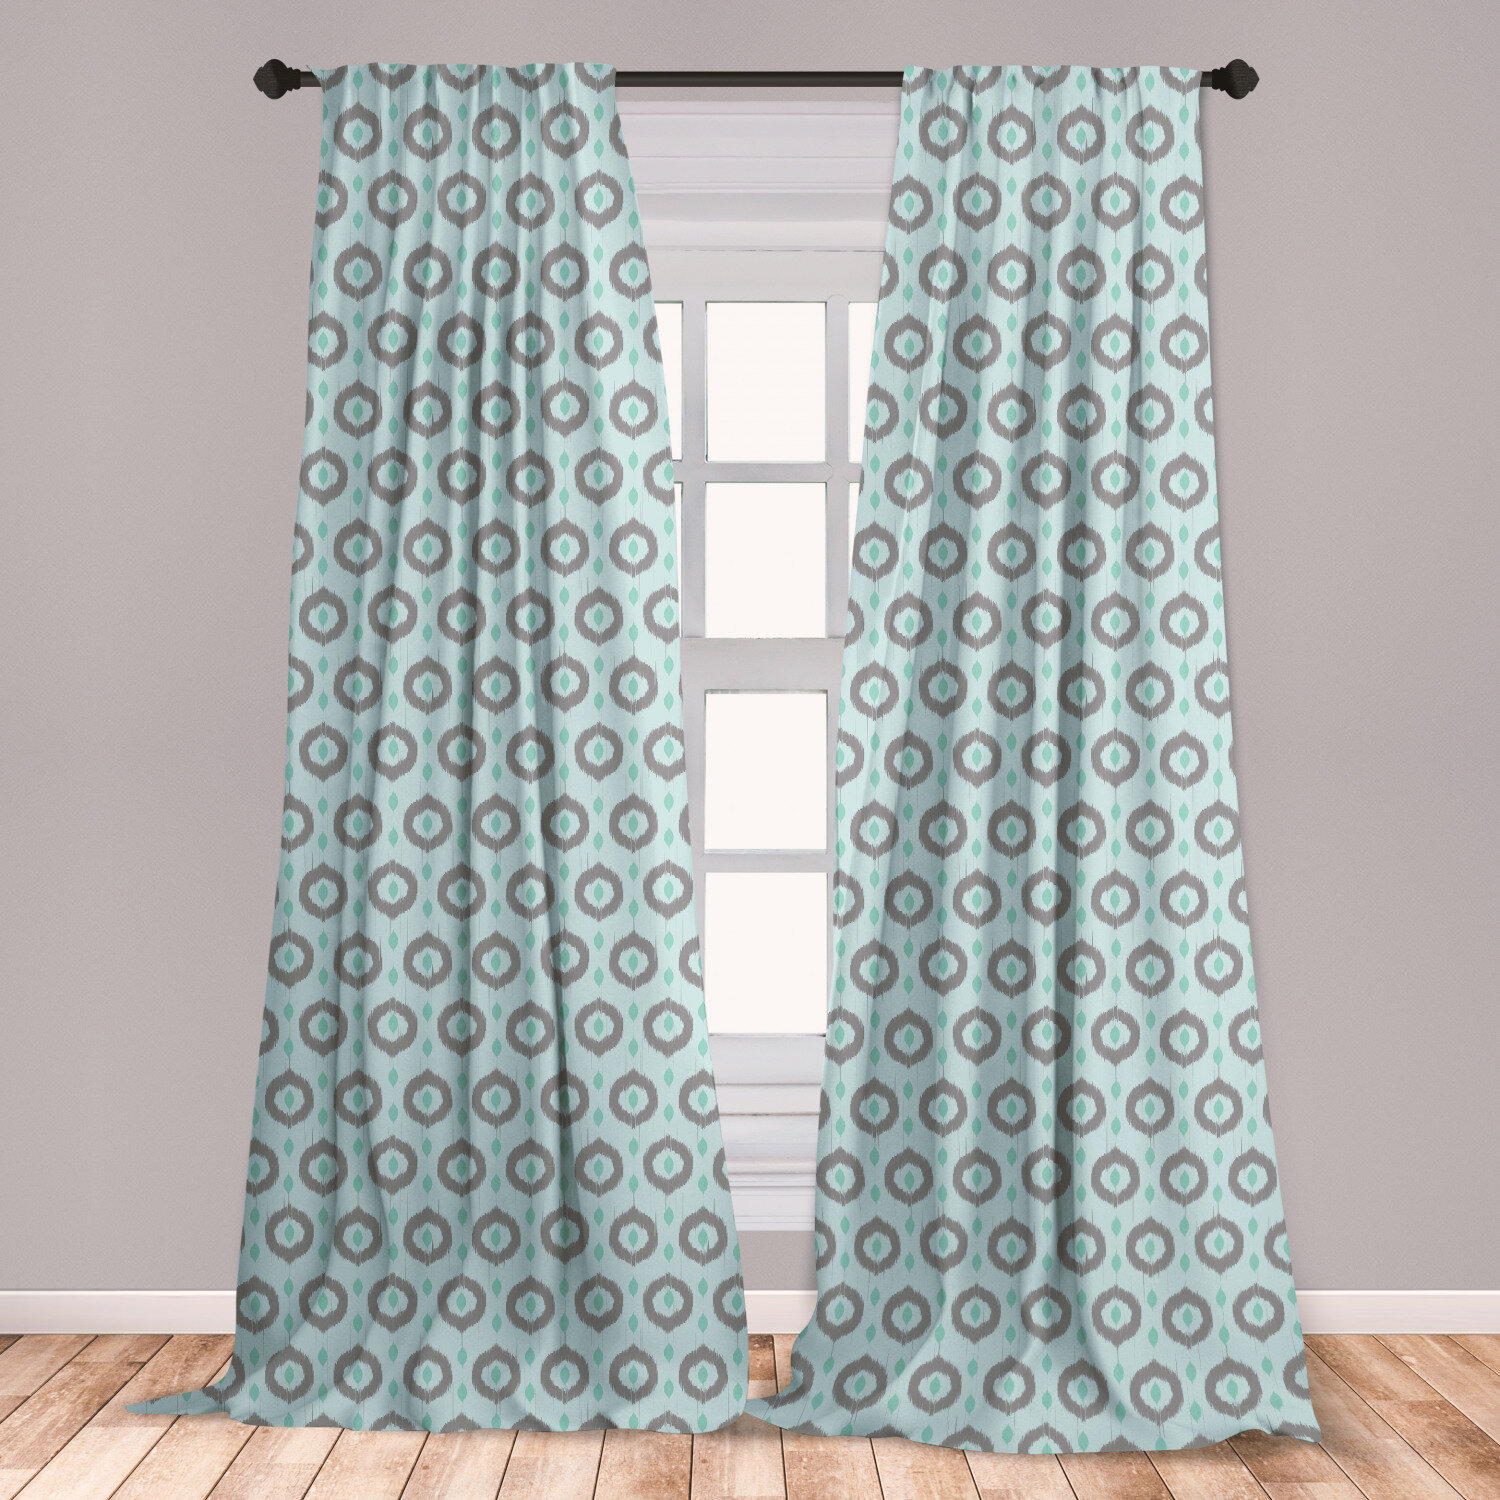 East Urban Home Ambesonne Seafoam Curtains Ikat Style Motifs Circular Pattern With Dots Inspiration Tribal Window Treatments 2 Panel Set For Living Room Bedroom Decor 56 X 63 Seafoam Sea Green Tauperoom